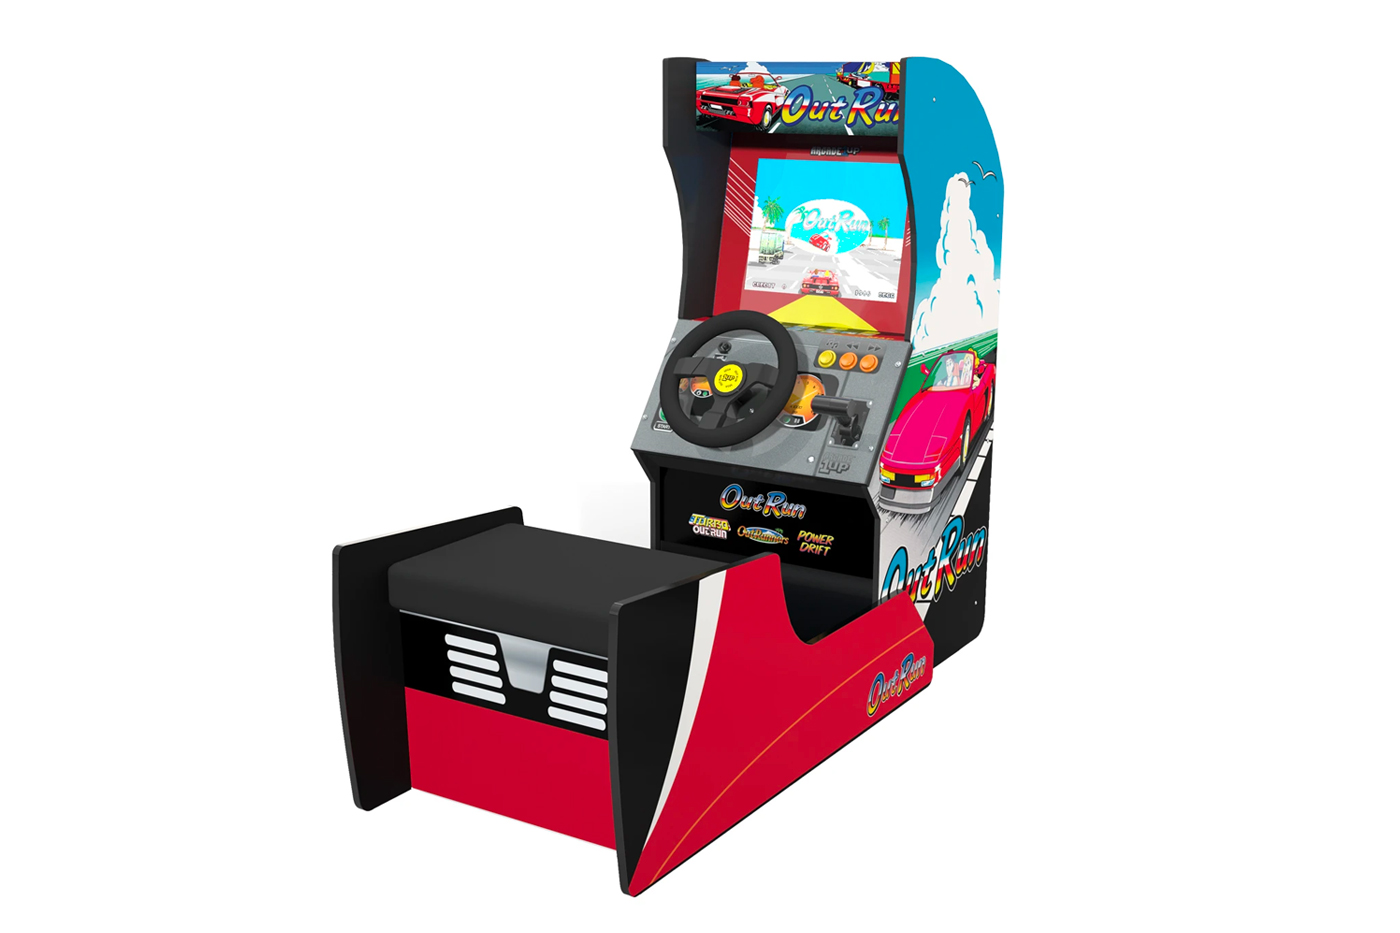 Máquina arcade retro Arcade1UP video juego OutRun de Sega